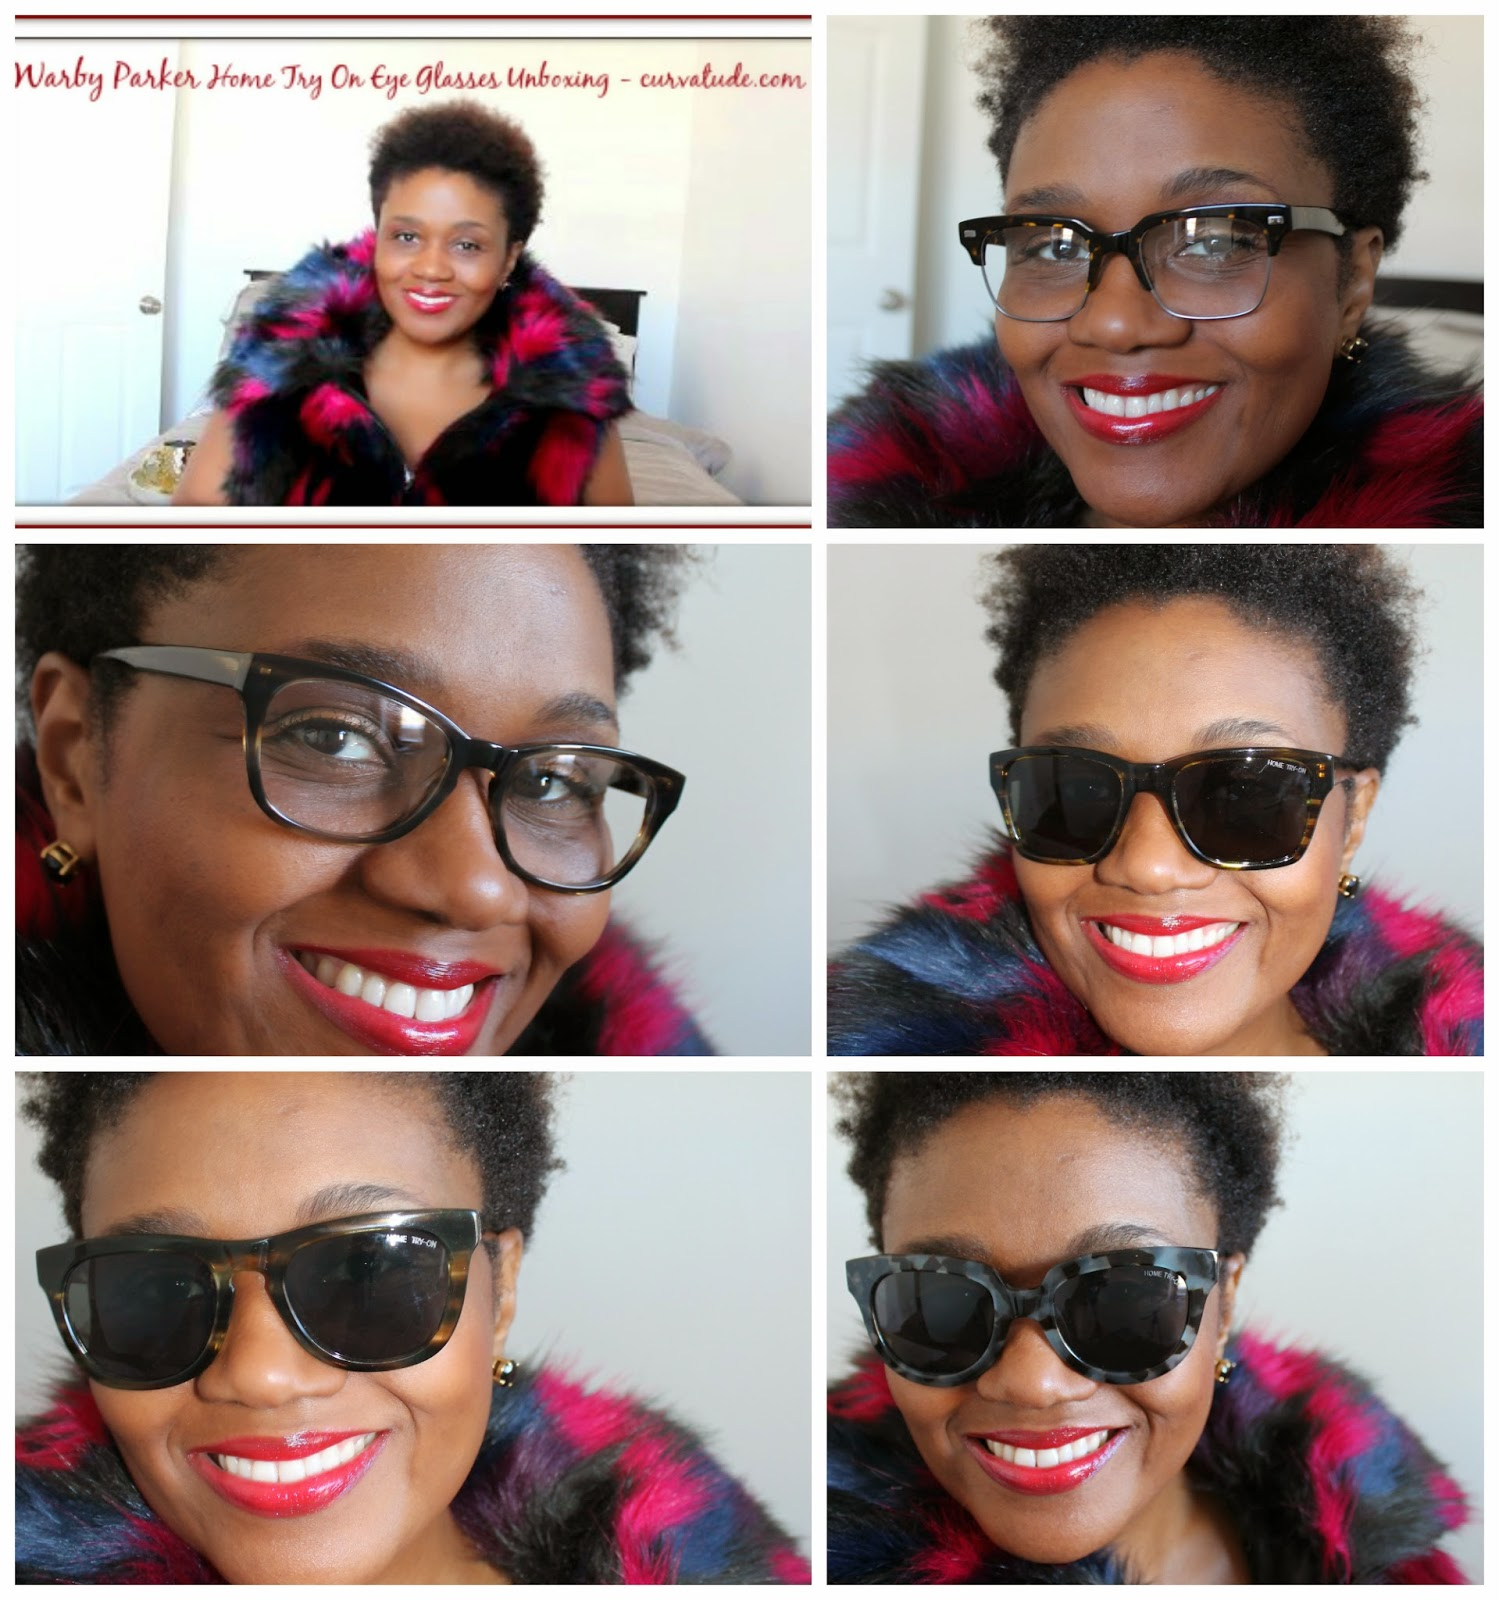 Warby Parker Home Try On Program Review Curvatude